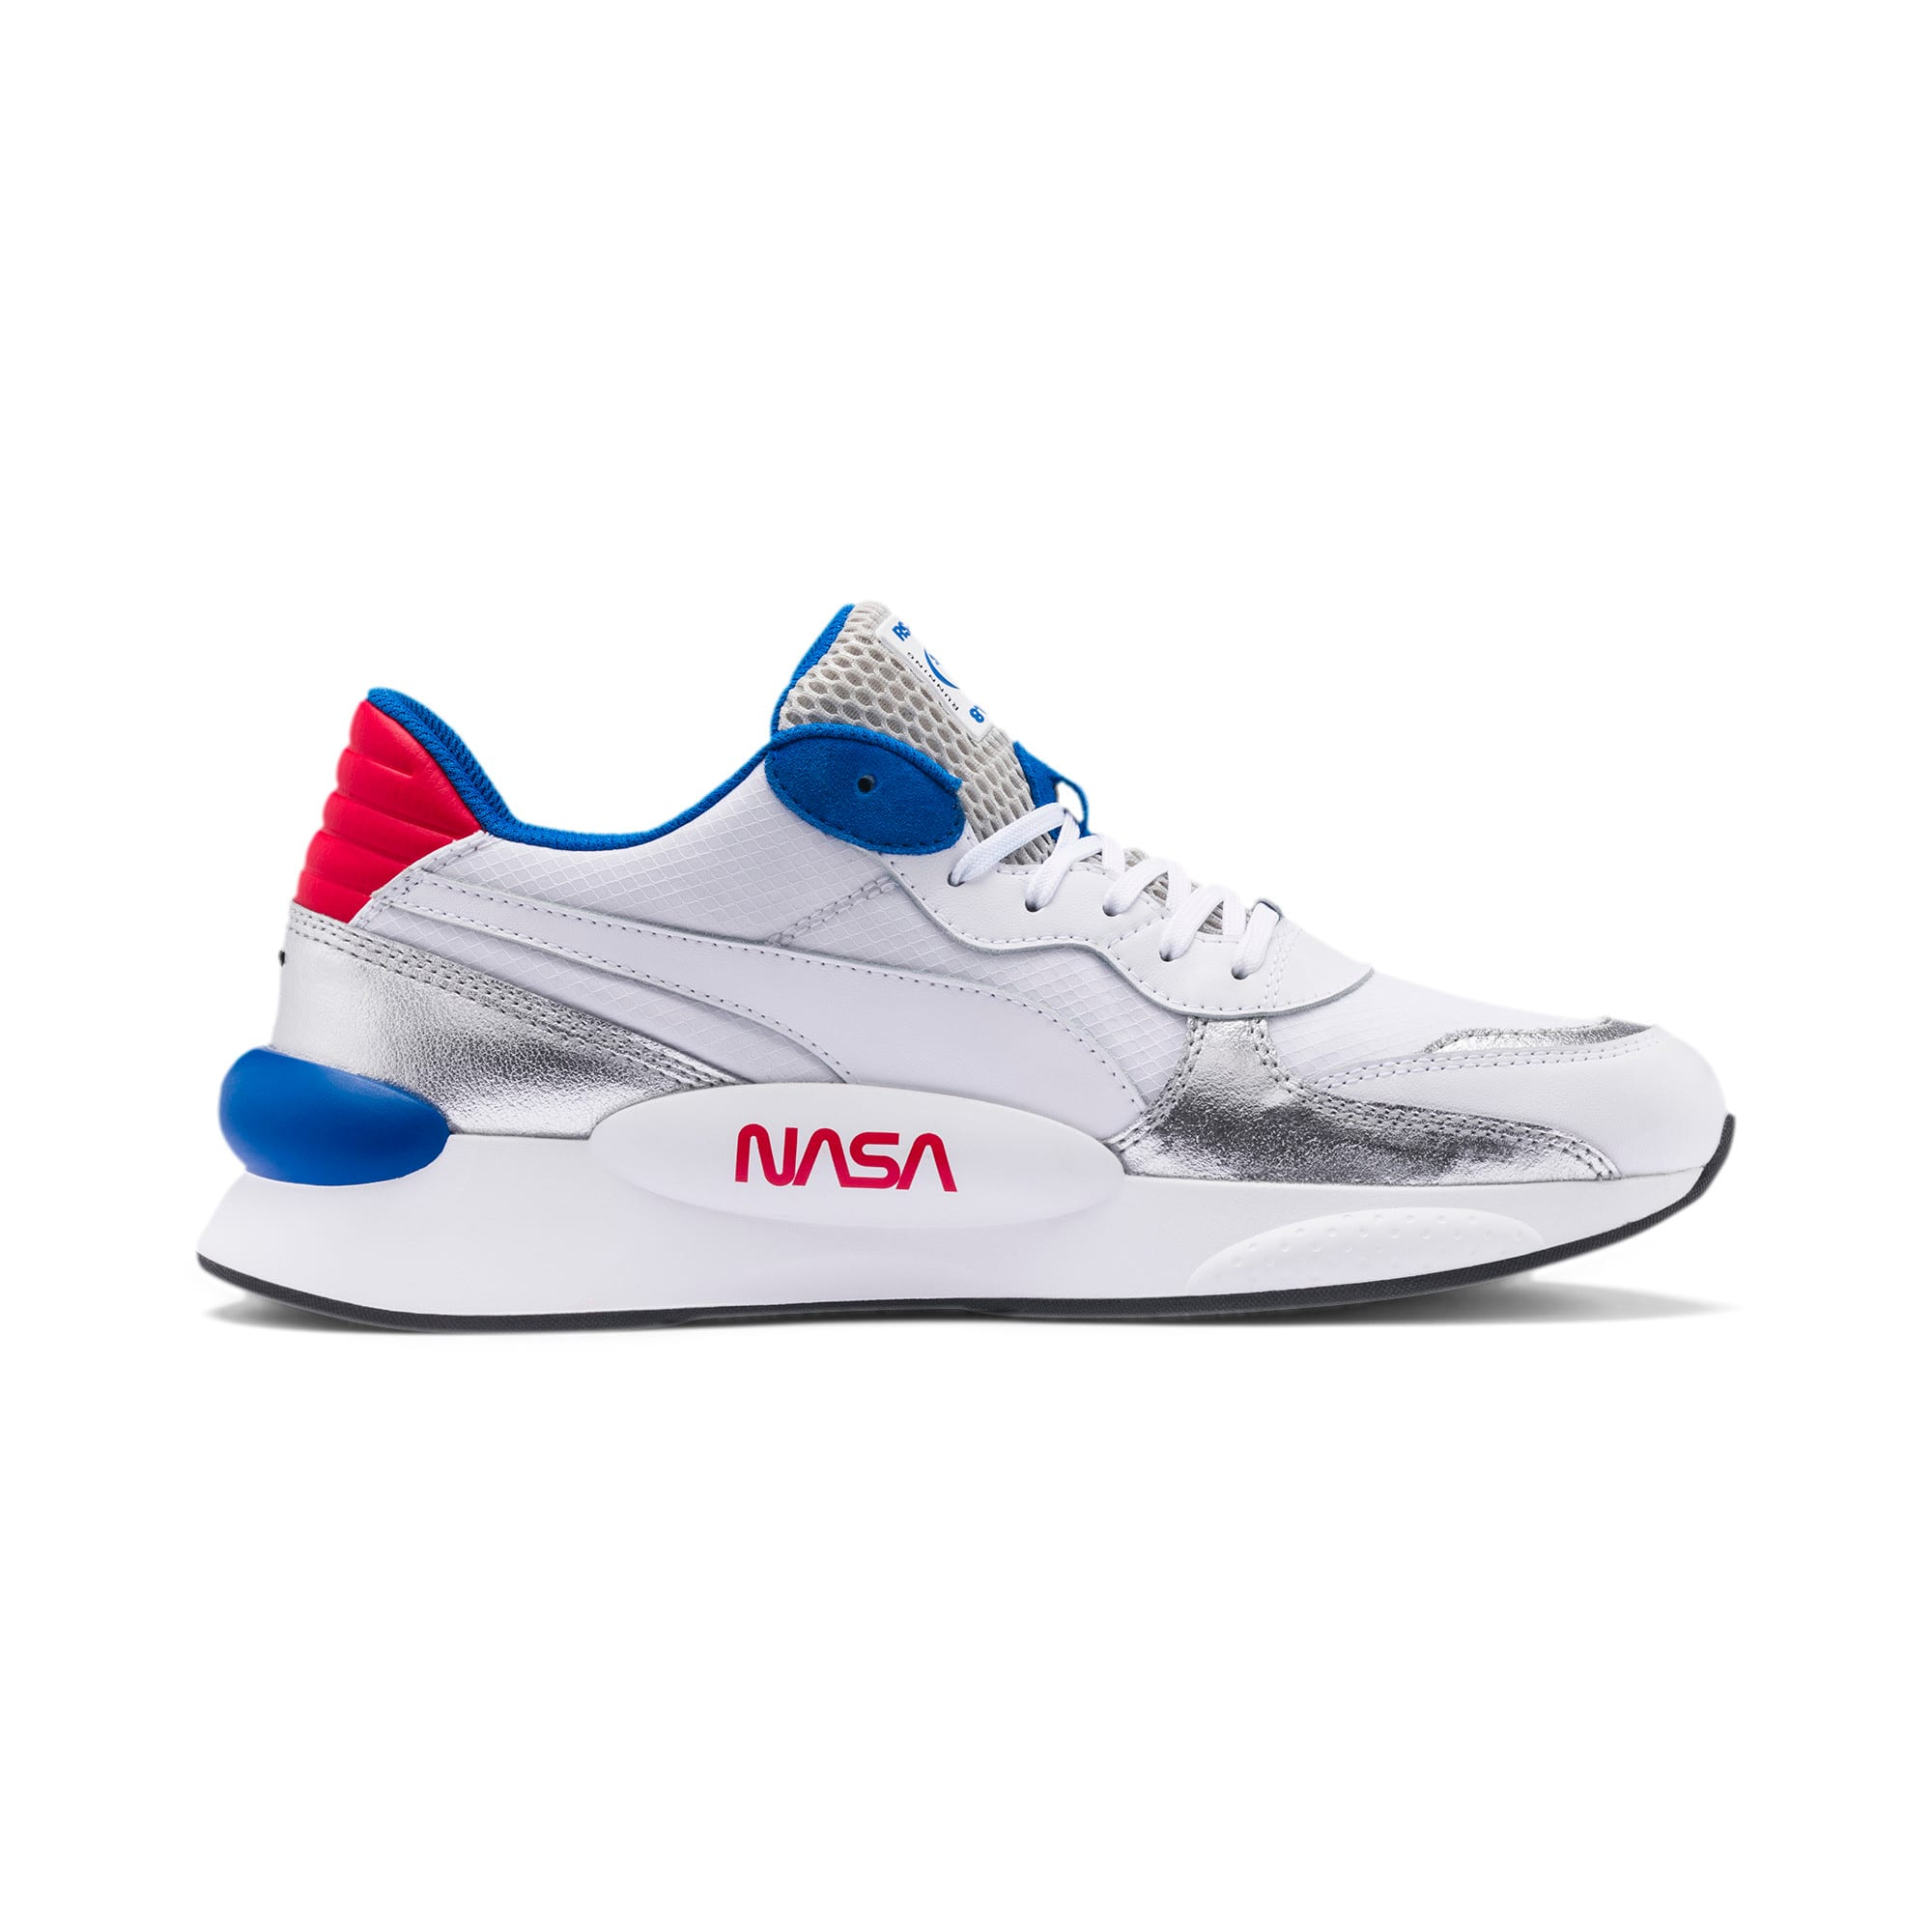 Thumbnail 5 of RS 9.8 Space Explorer Trainers, Puma White-Puma Silver, medium